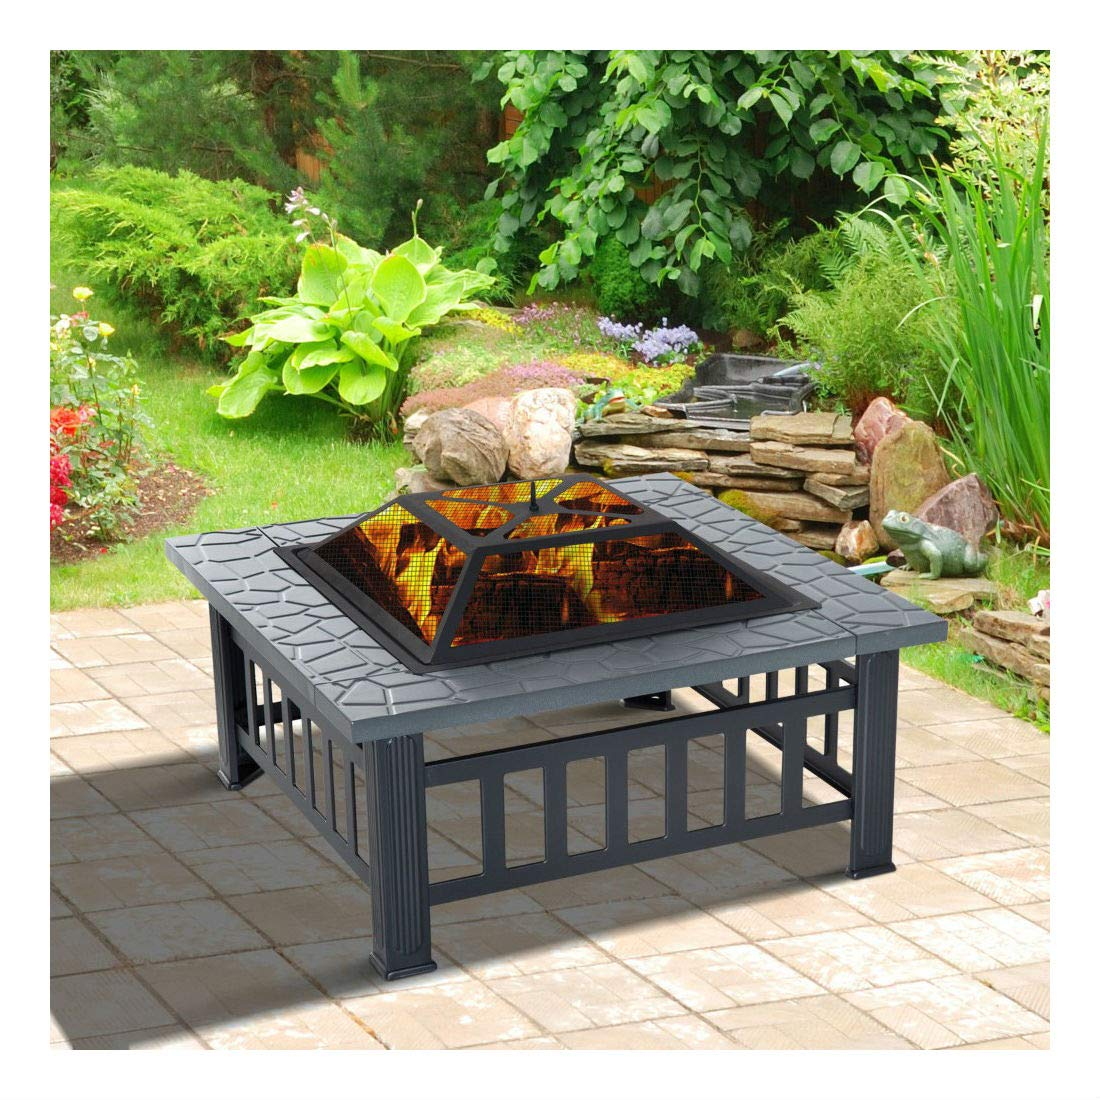 32'' Outdoor Patio Firepit Fireplace Stove Heater Metal Square Wood Burning by Unknown